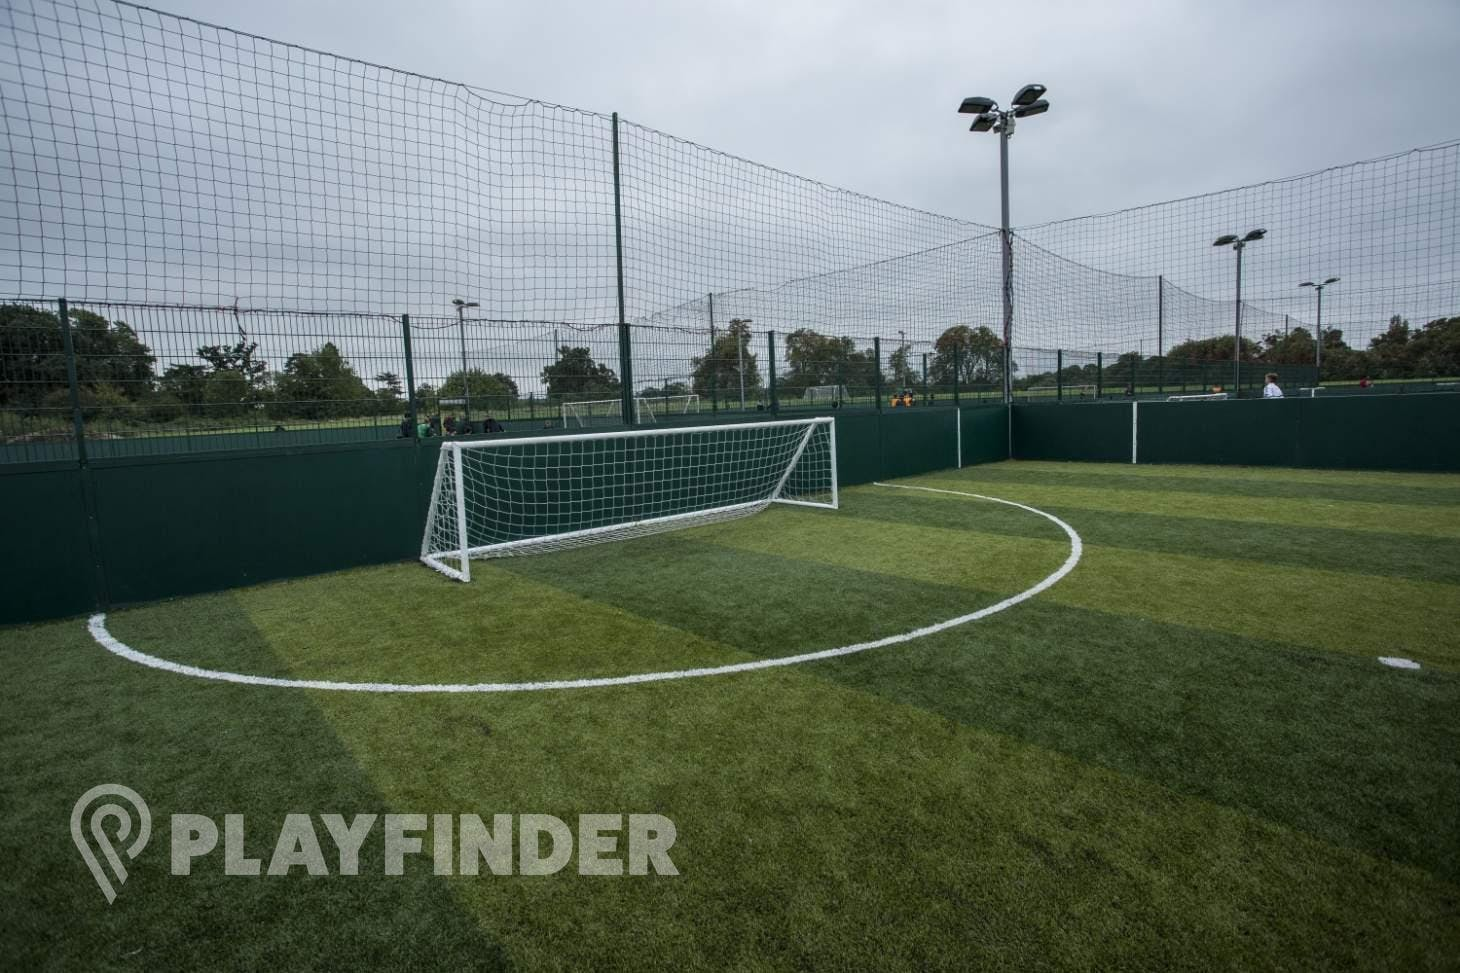 Powerleague Portobello 5 a side | 3G Astroturf football pitch